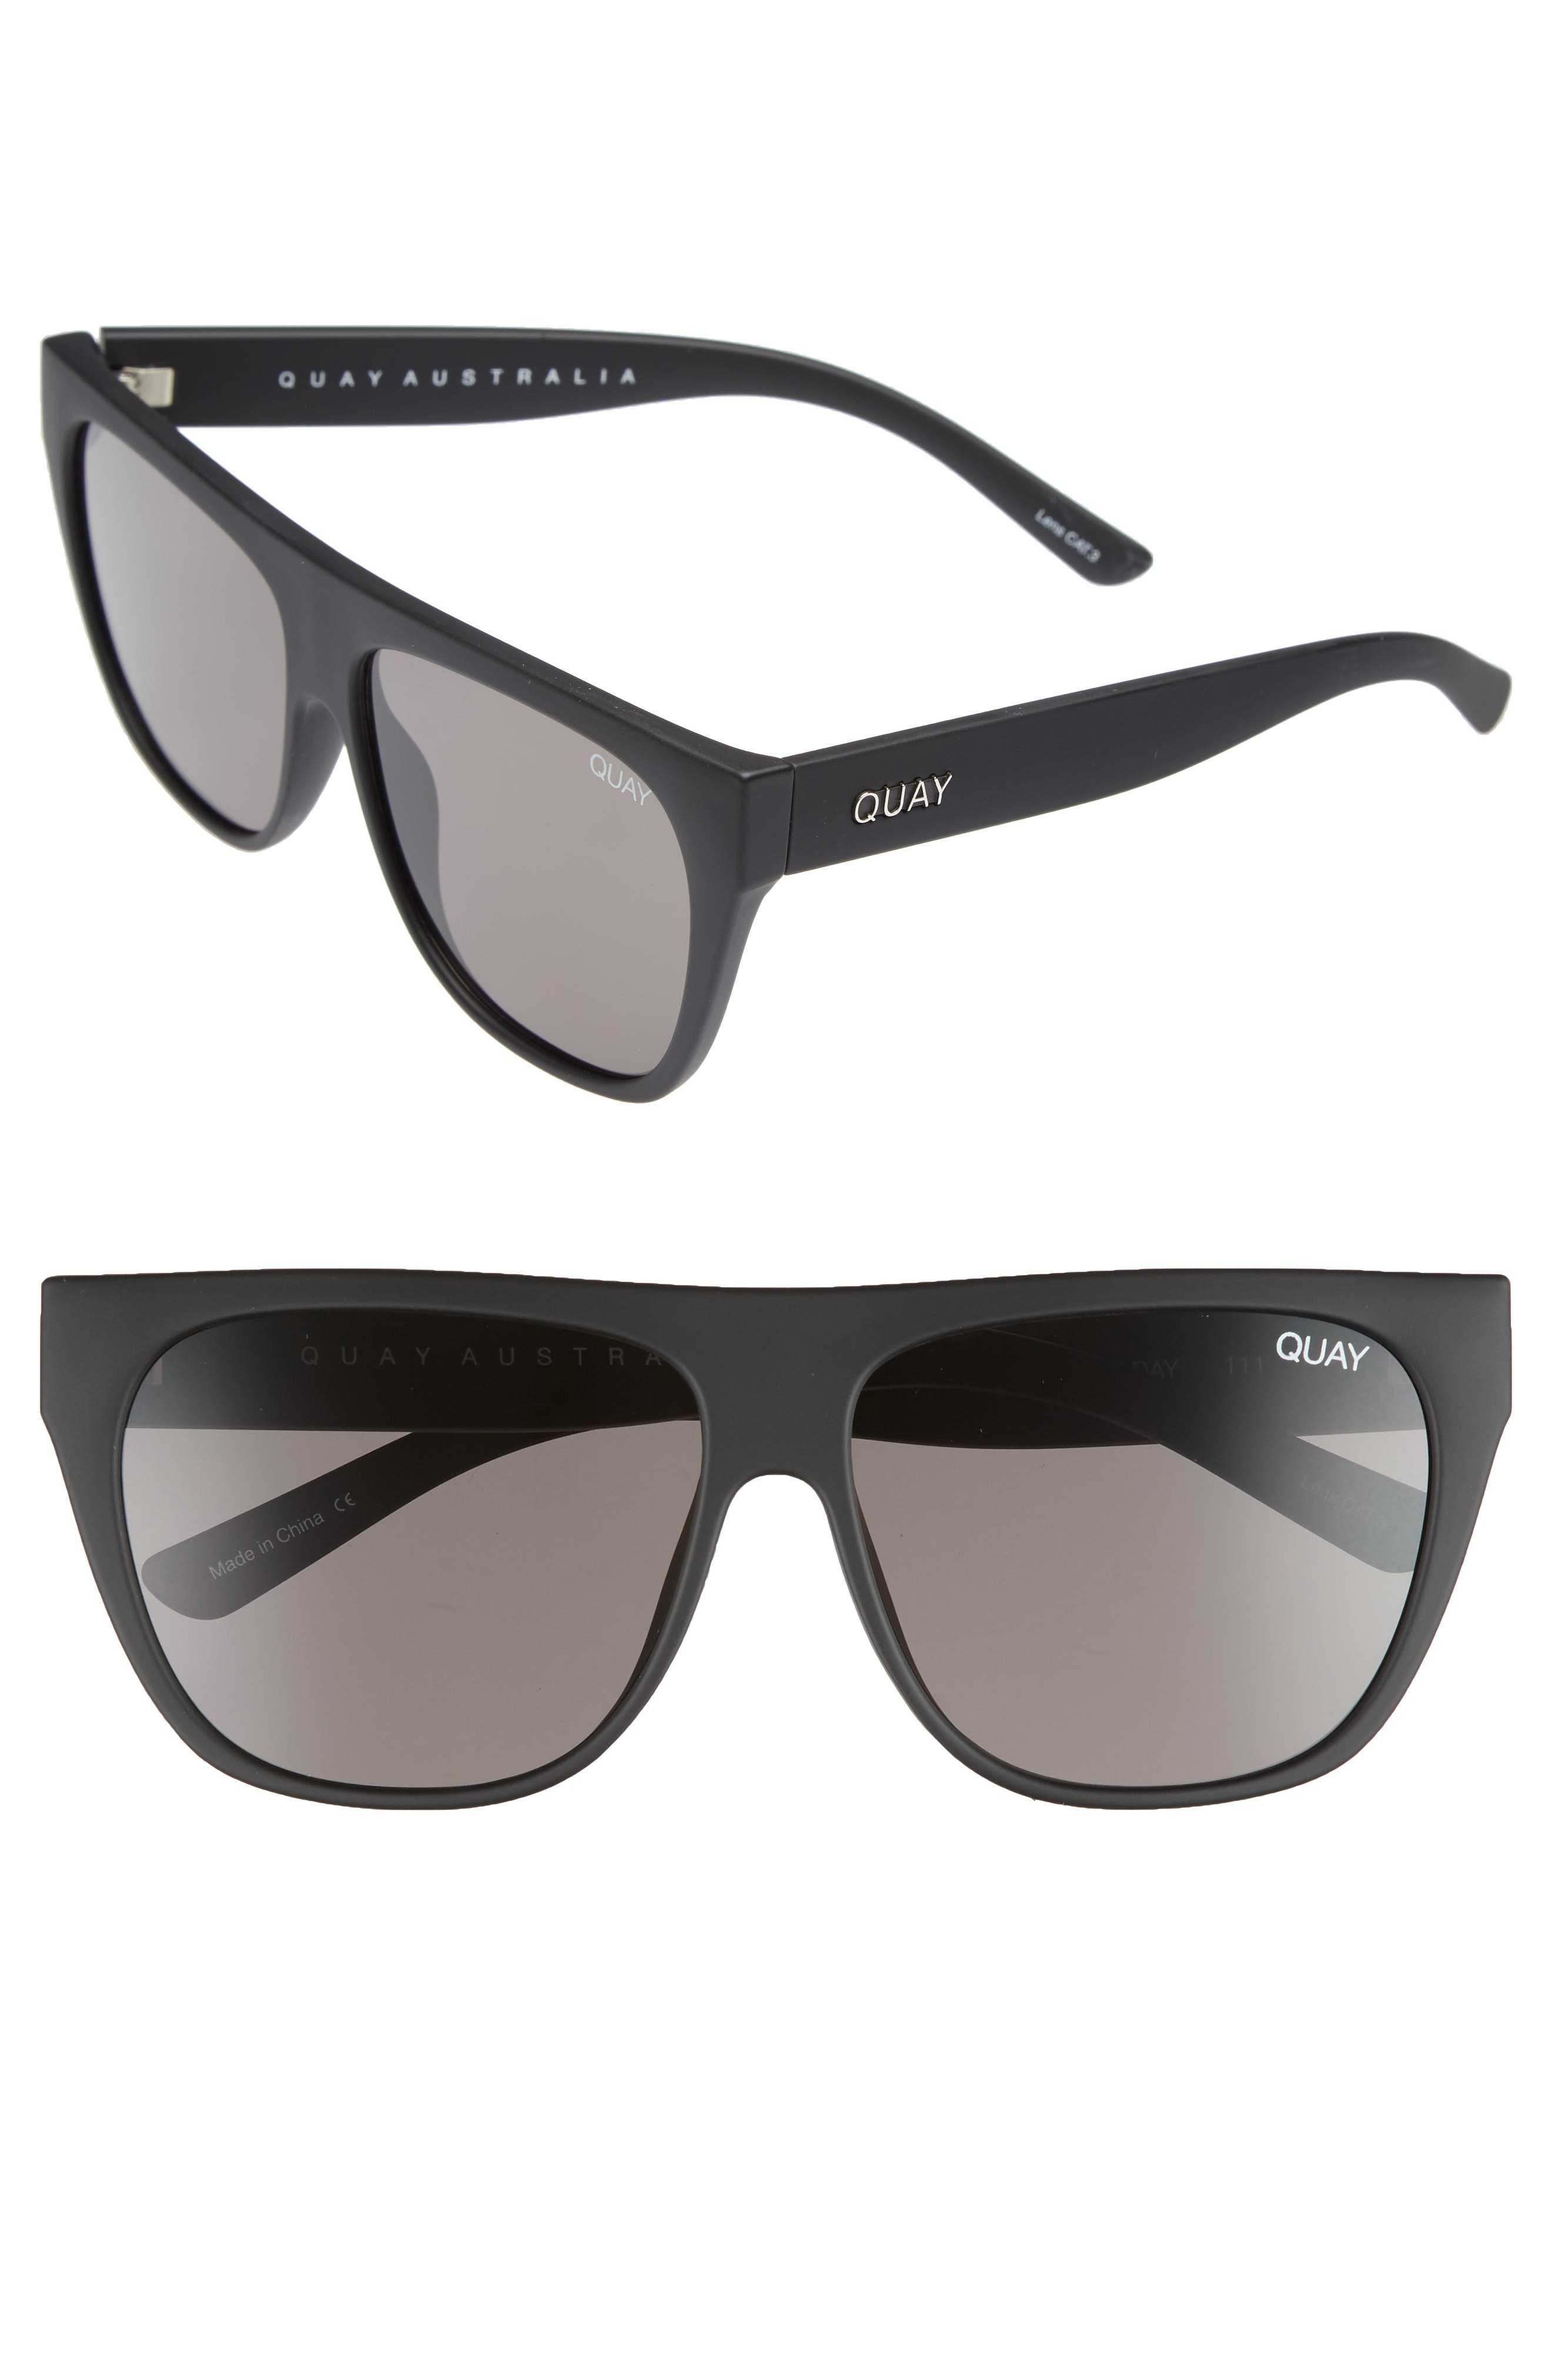 Drama by Day 55mm Square Sunglasses,                             Main thumbnail 1, color,                             005